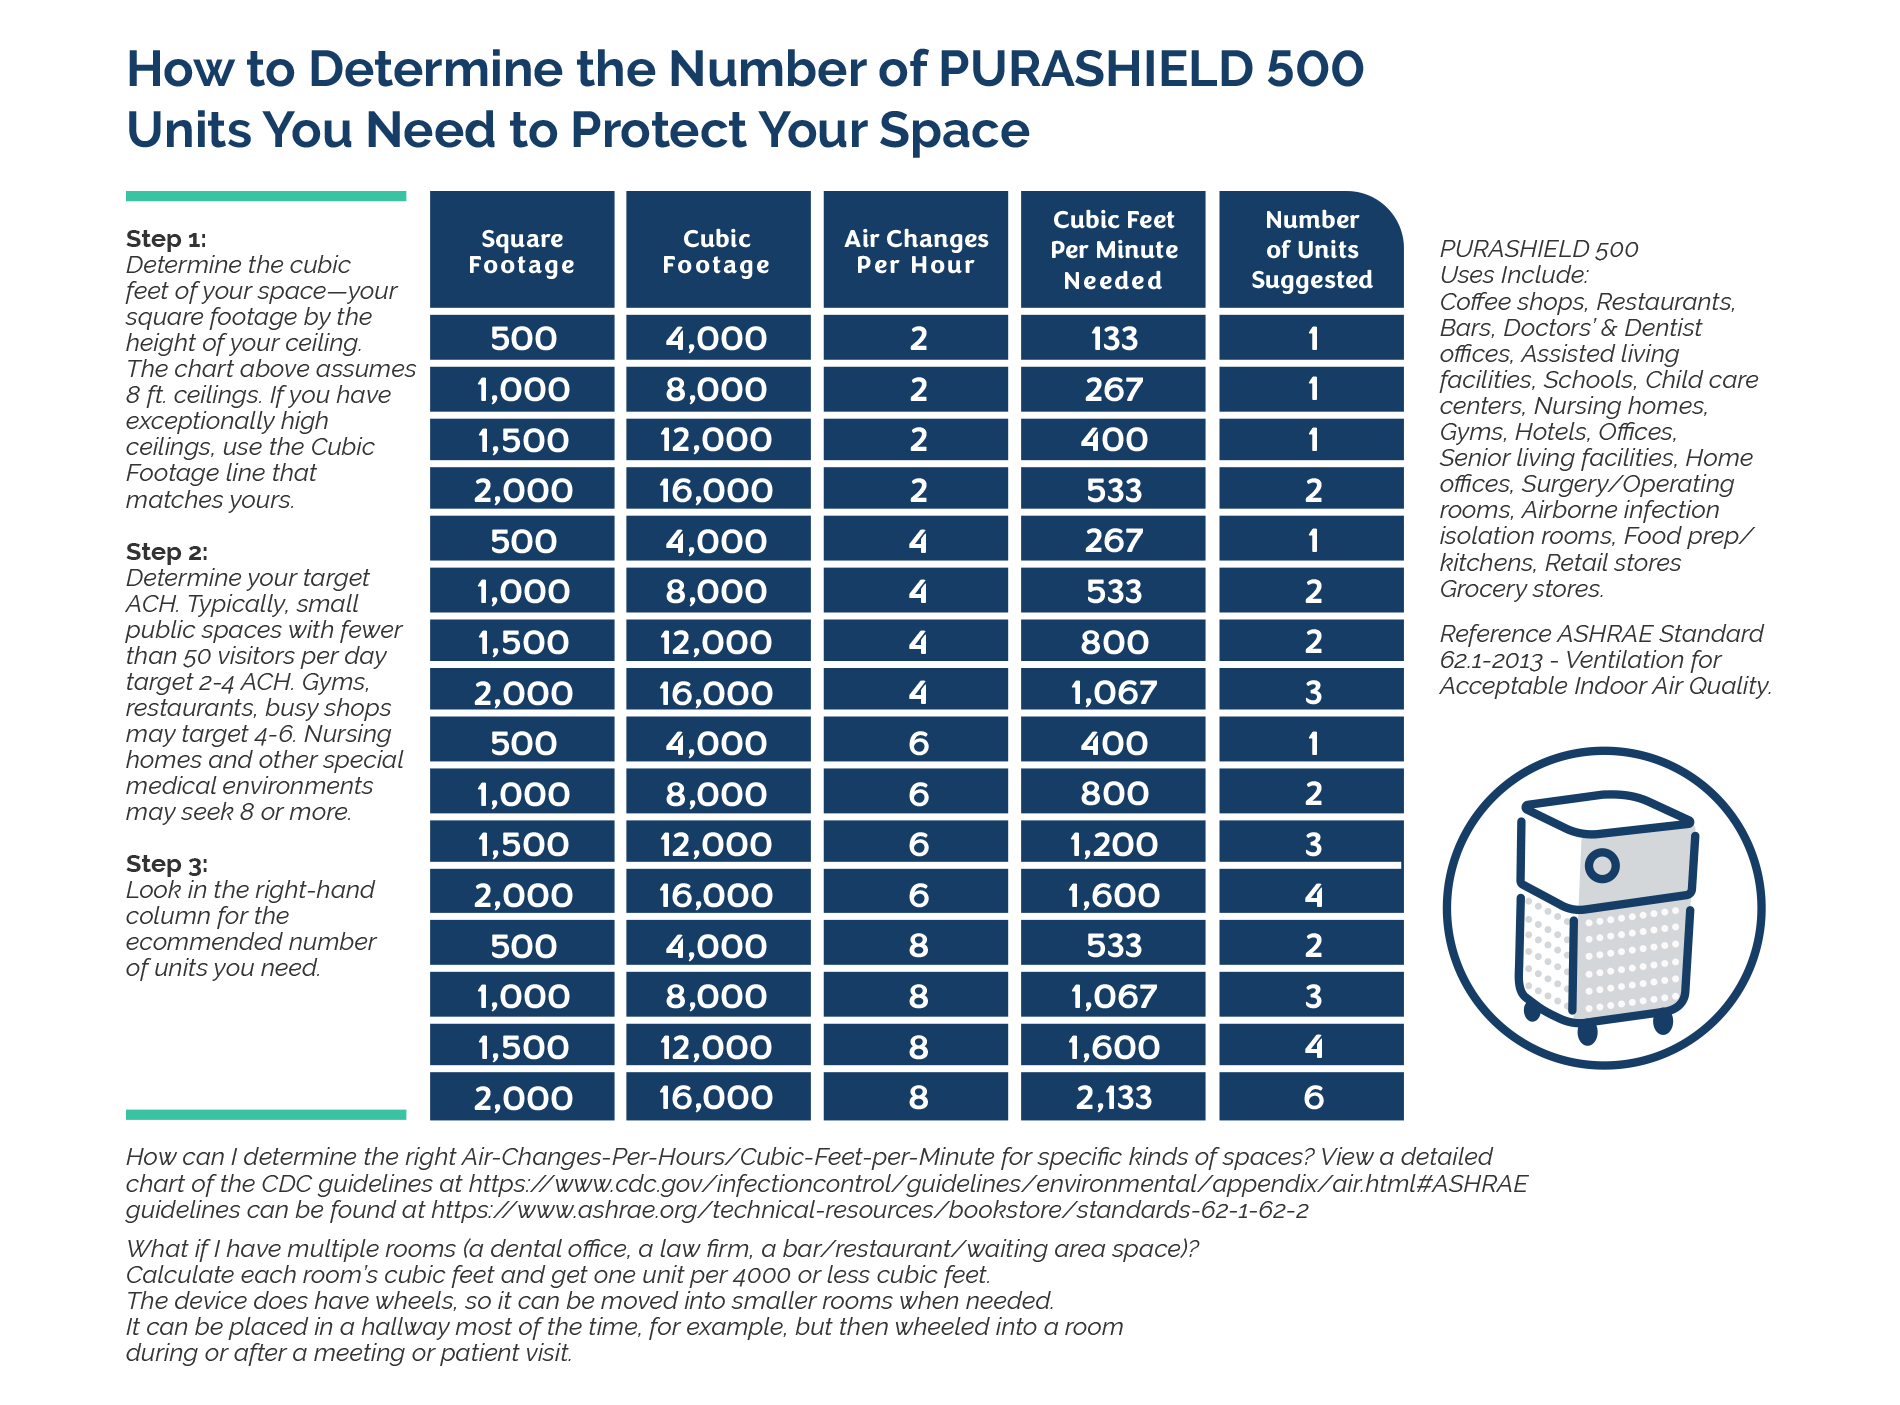 Determine the Number of Purashield 500 Units You Need